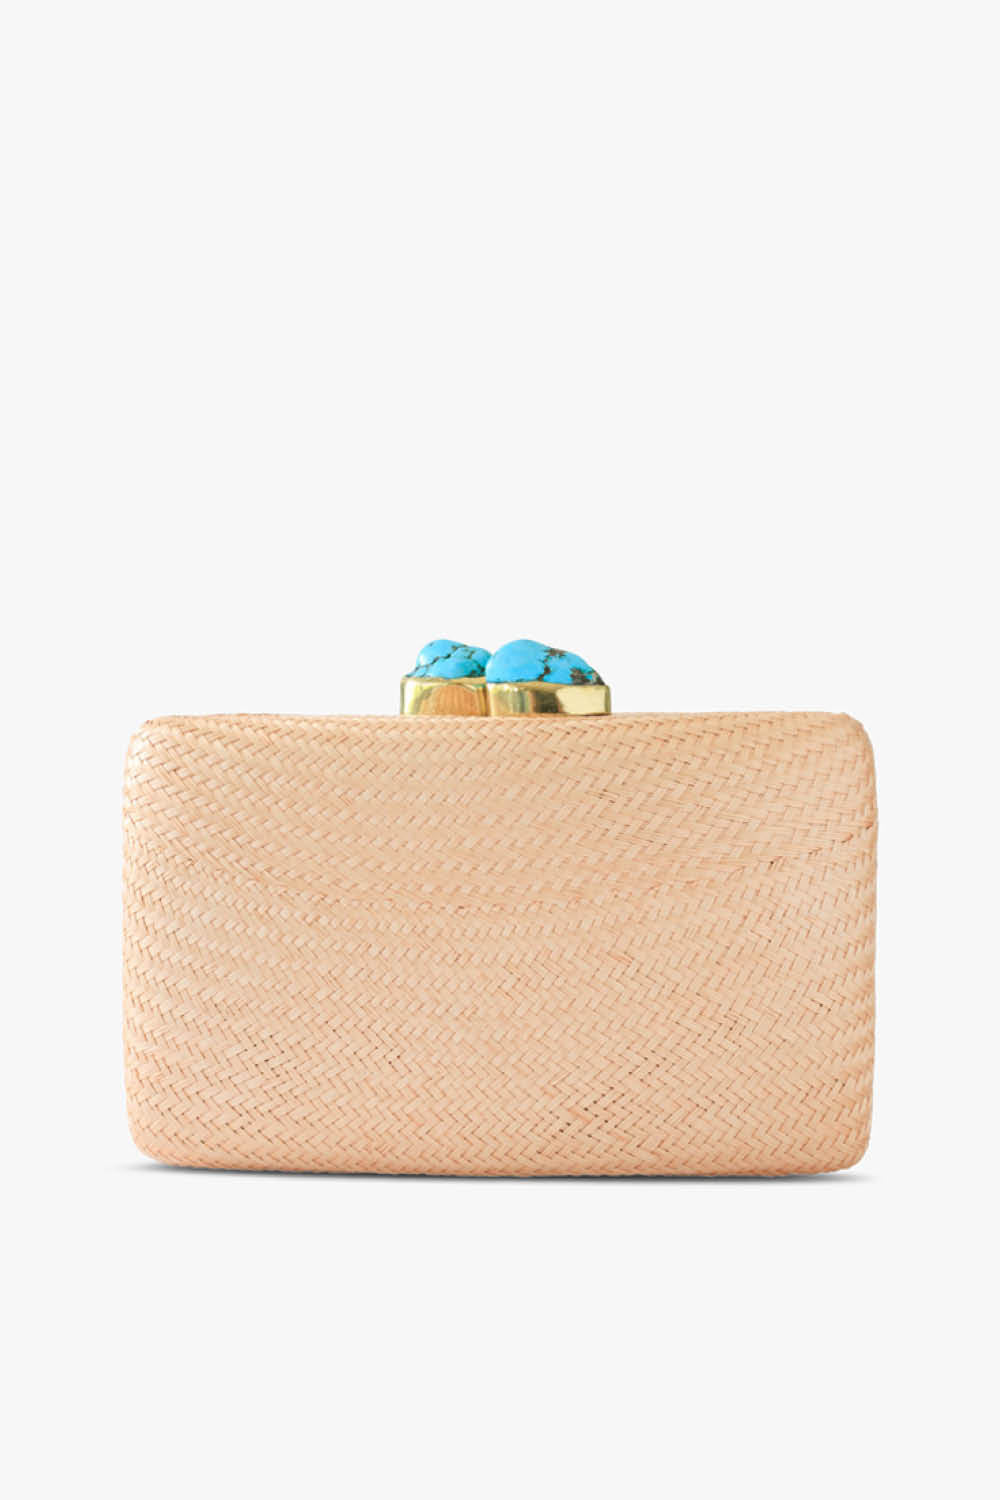 Jen Clutch in Toast with Turquoise Stones